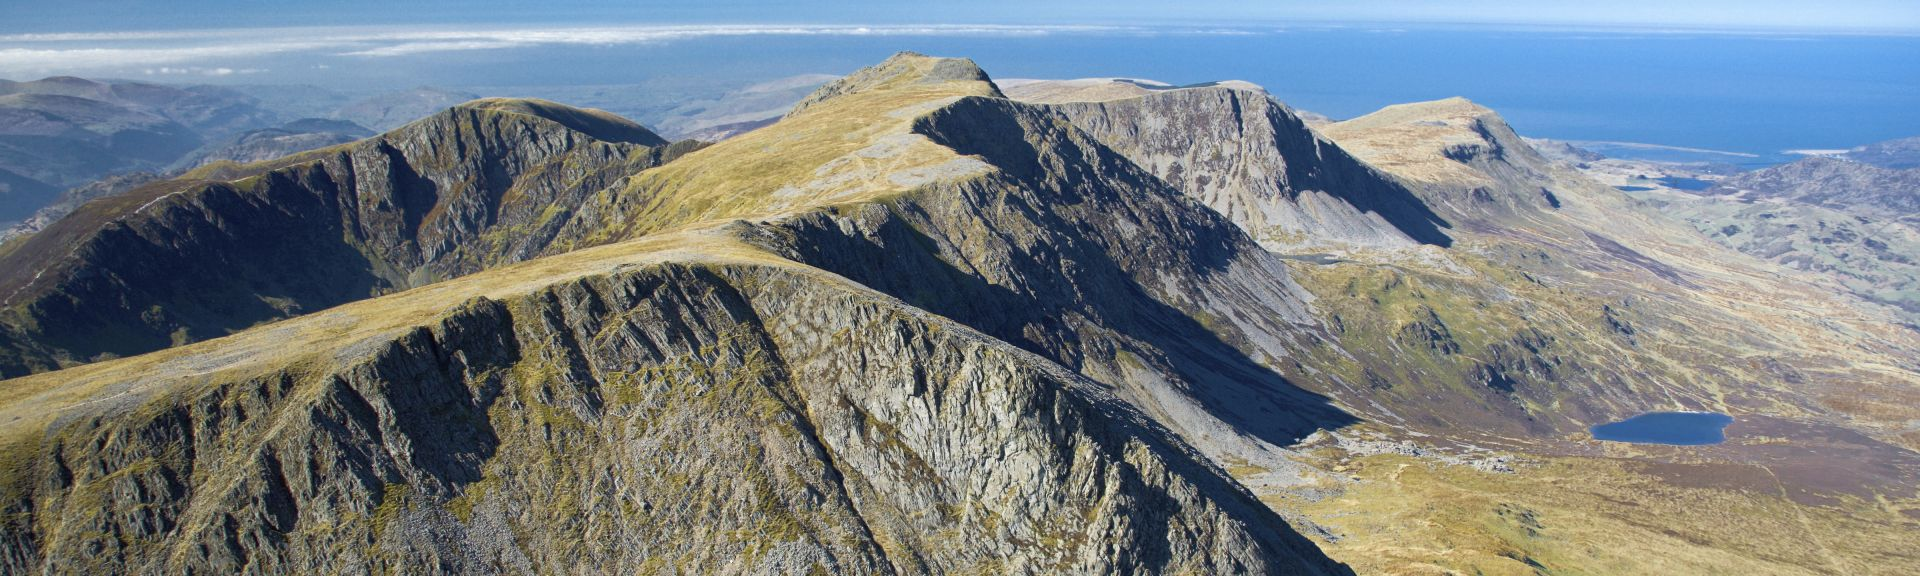 The mountains of Snowdonia in Wales